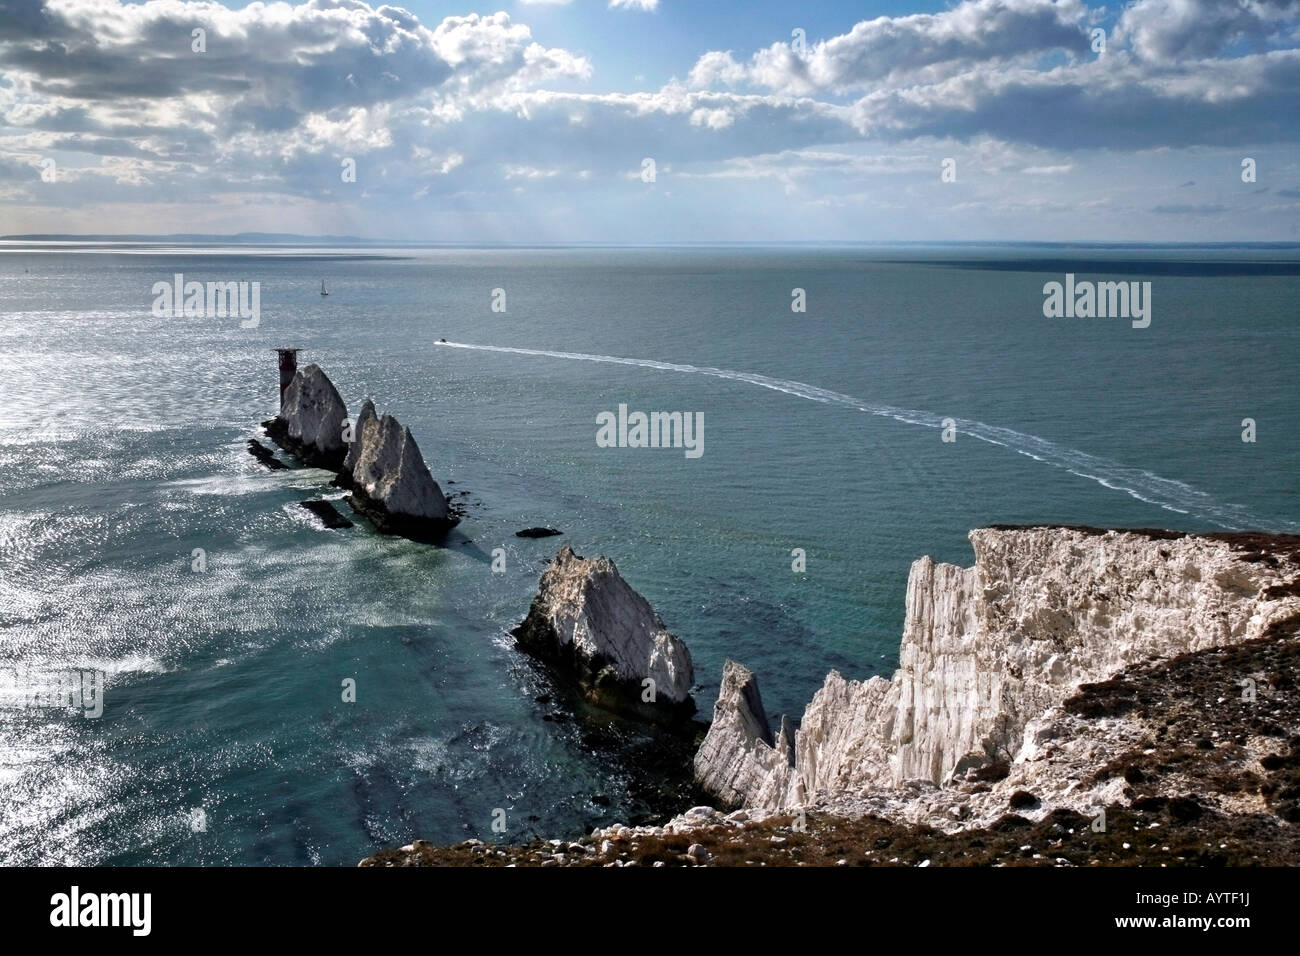 A view of the Solent from the Needles, Isle of Wight - Stock Image